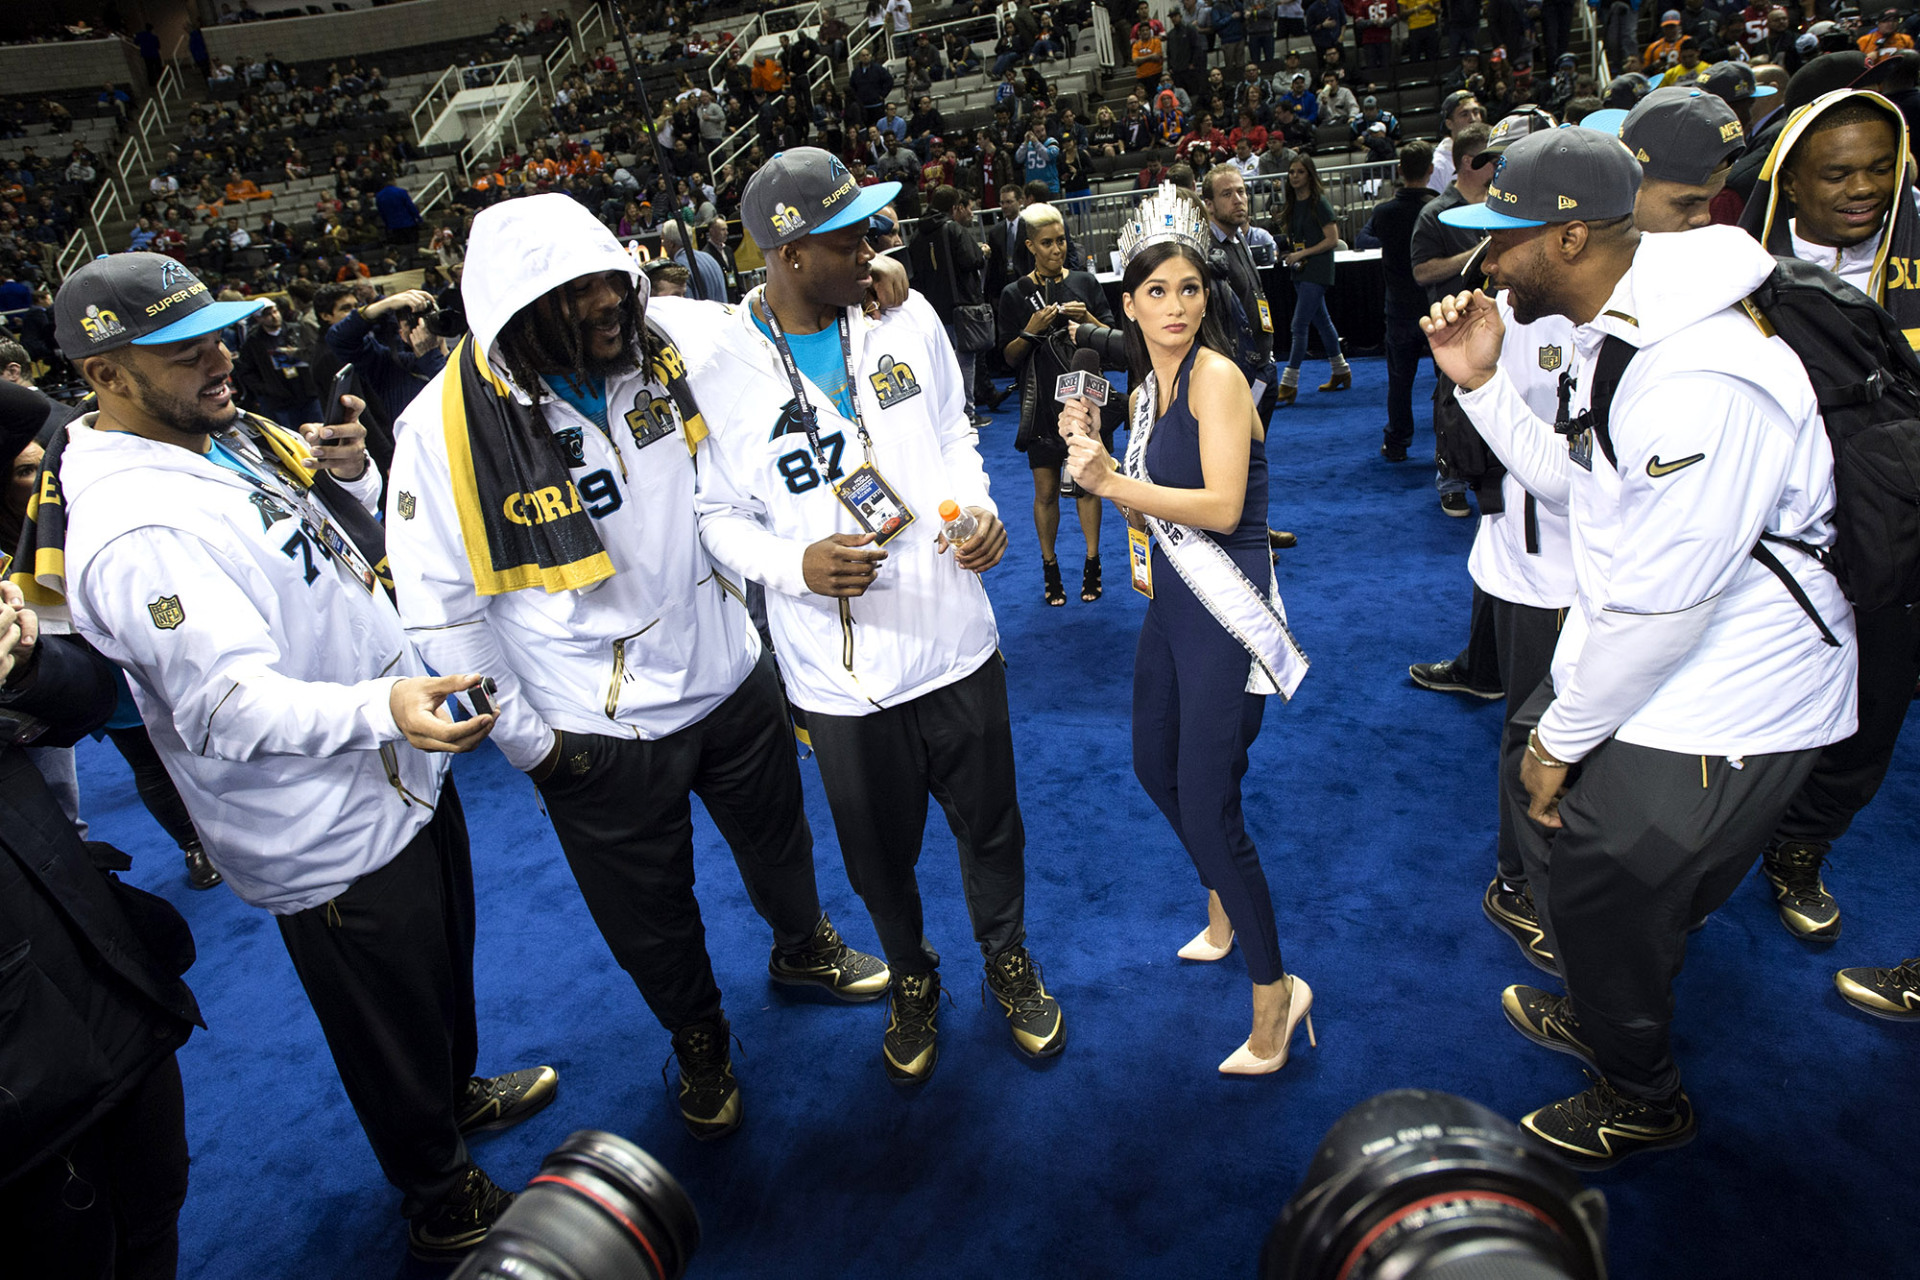 Miss Universe Dabbed With the Panthers, and Other Super Bowl Media Day Highlights